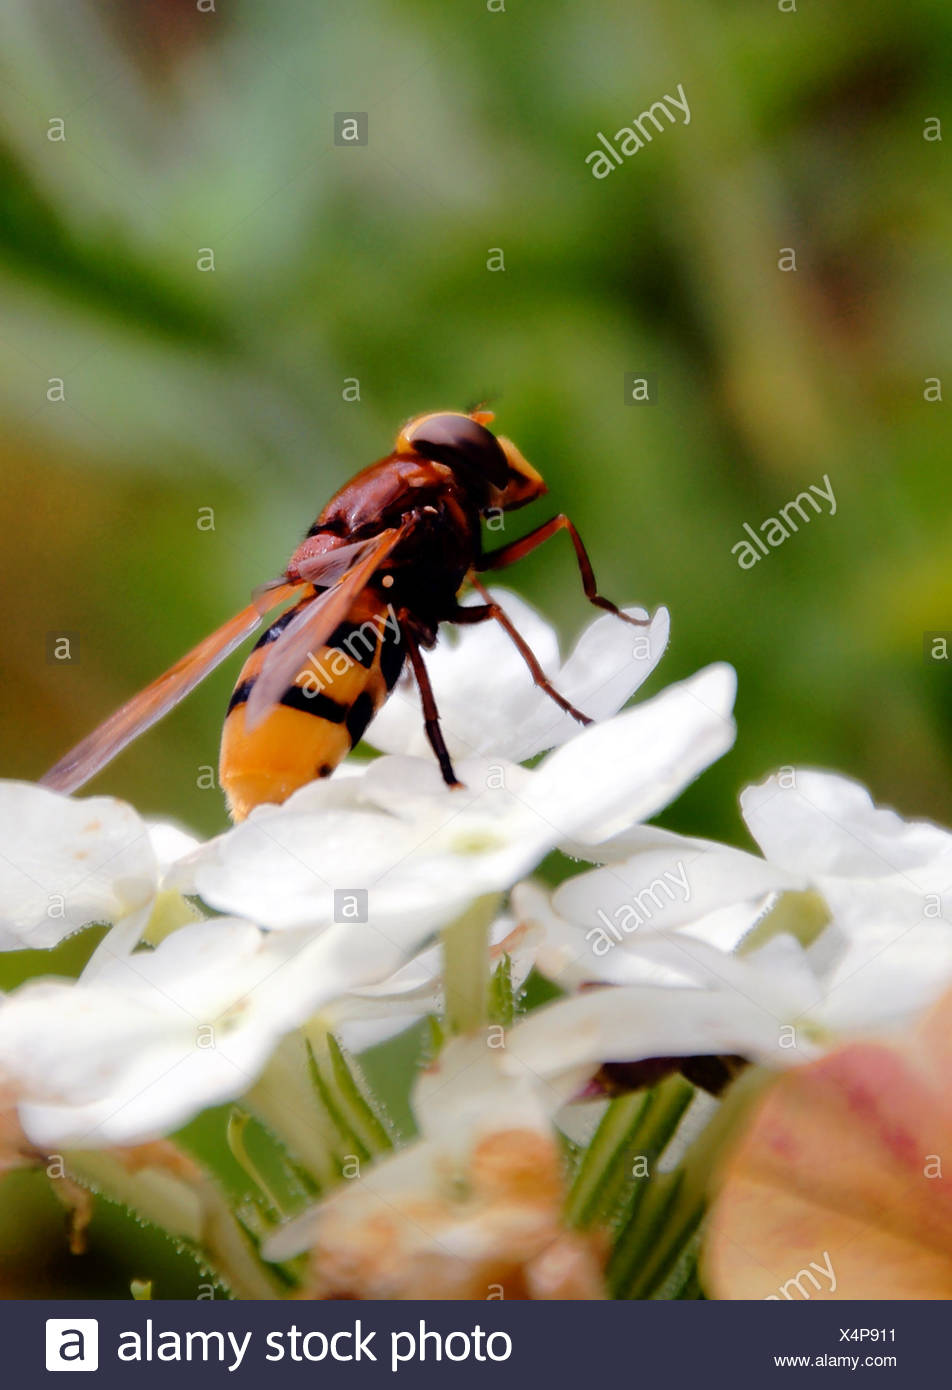 flies, butterfly, nectar, doll, caterpillar, flutter, collect, collecting, - Stock Image